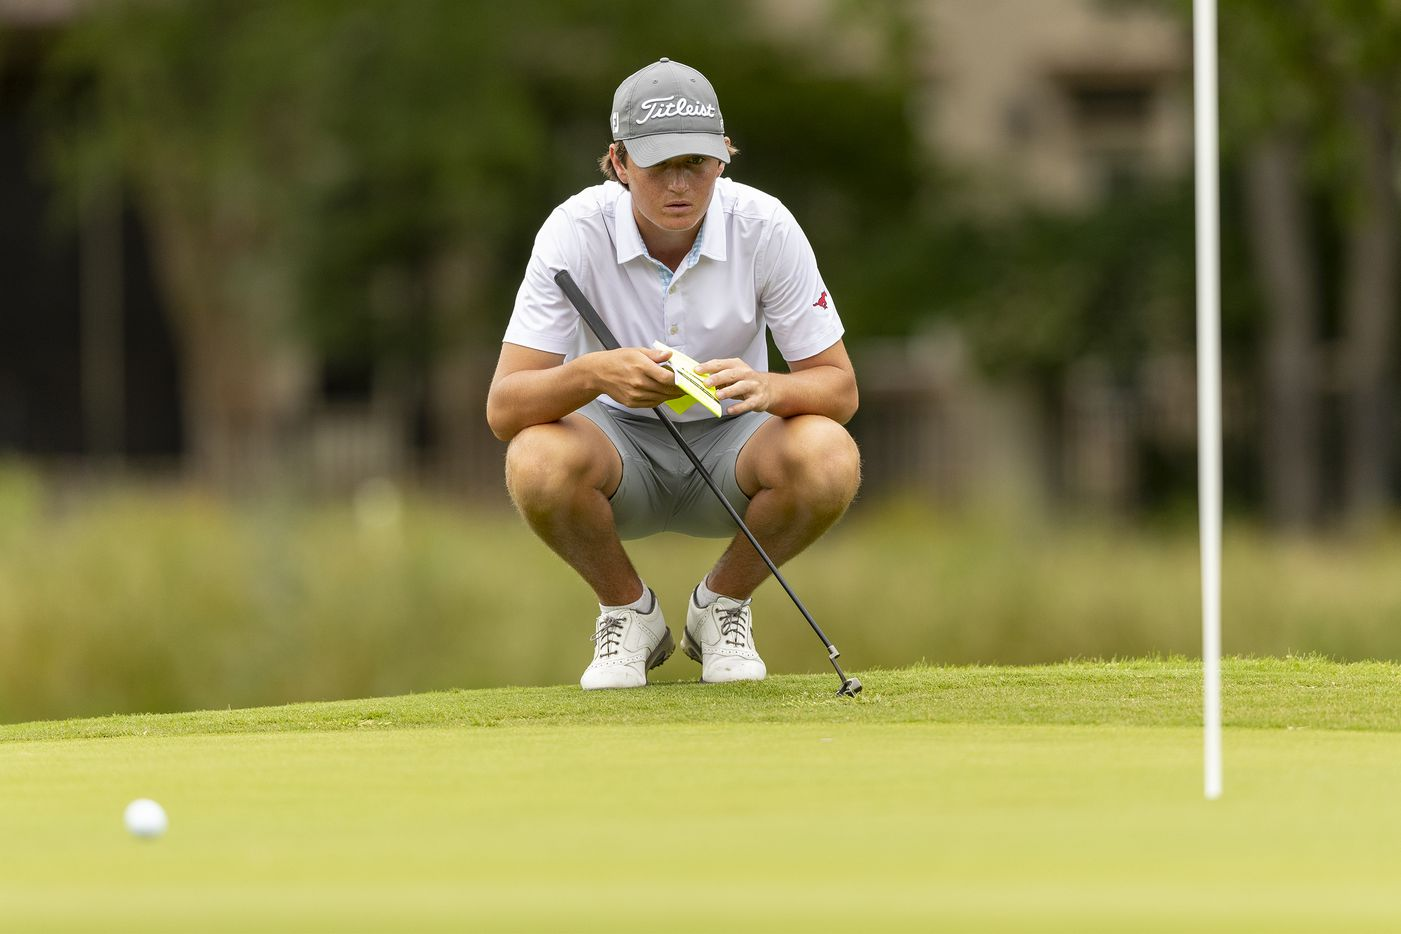 JJ PearceÕs Preston Stout studies hit shot on the 13th green during the final round of the UIL Class 6A boys golf tournament in Georgetown, Tuesday, May 18, 2021. (Stephen Spillman/Special Contributor)